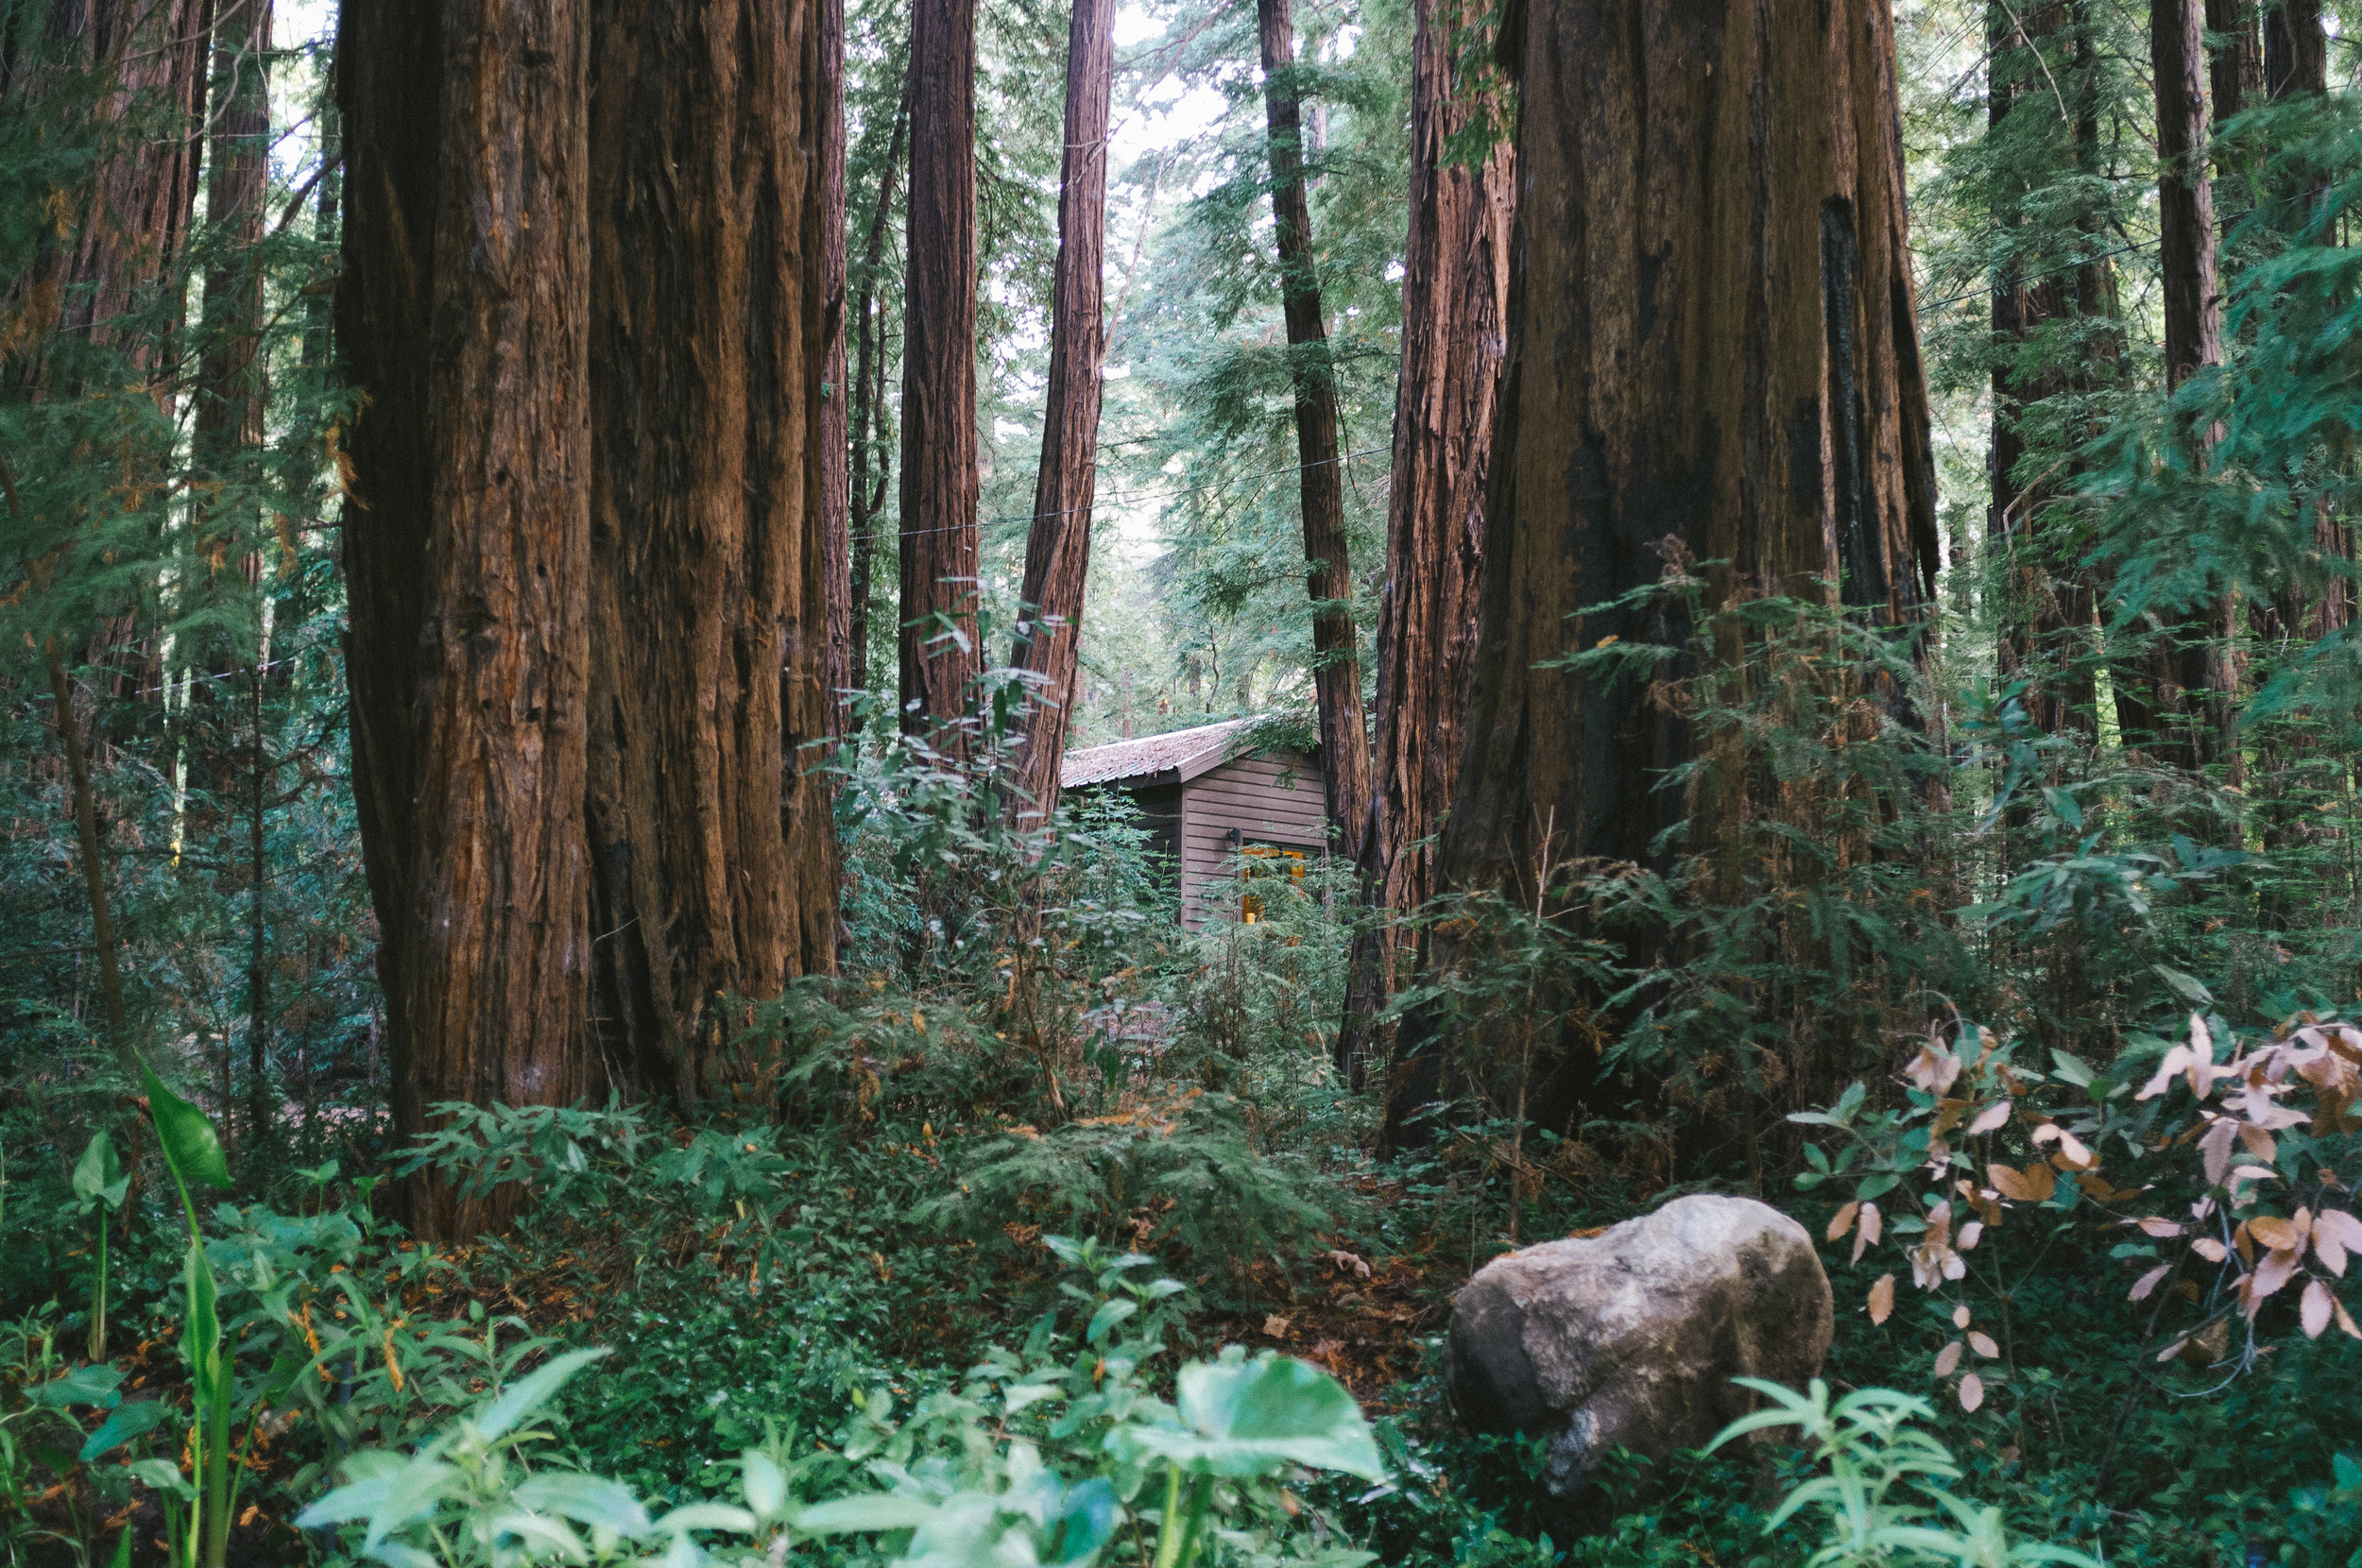 Northern California (Camping) - This is for my friends who prefer to stay grounded rather than afloat. A lovely retreat minus the boat.Camp with us for a week at Highland Lakes. Hike the trails to glaciers and valleys only accessible by foot. Yoga and meditation is breathtaking atop Folger Peak. This is one of my favorite places in the world as I have been coming here since before I learned to walk. If you haven't seen this landscape, it's an absolute must.Click to see pictures…